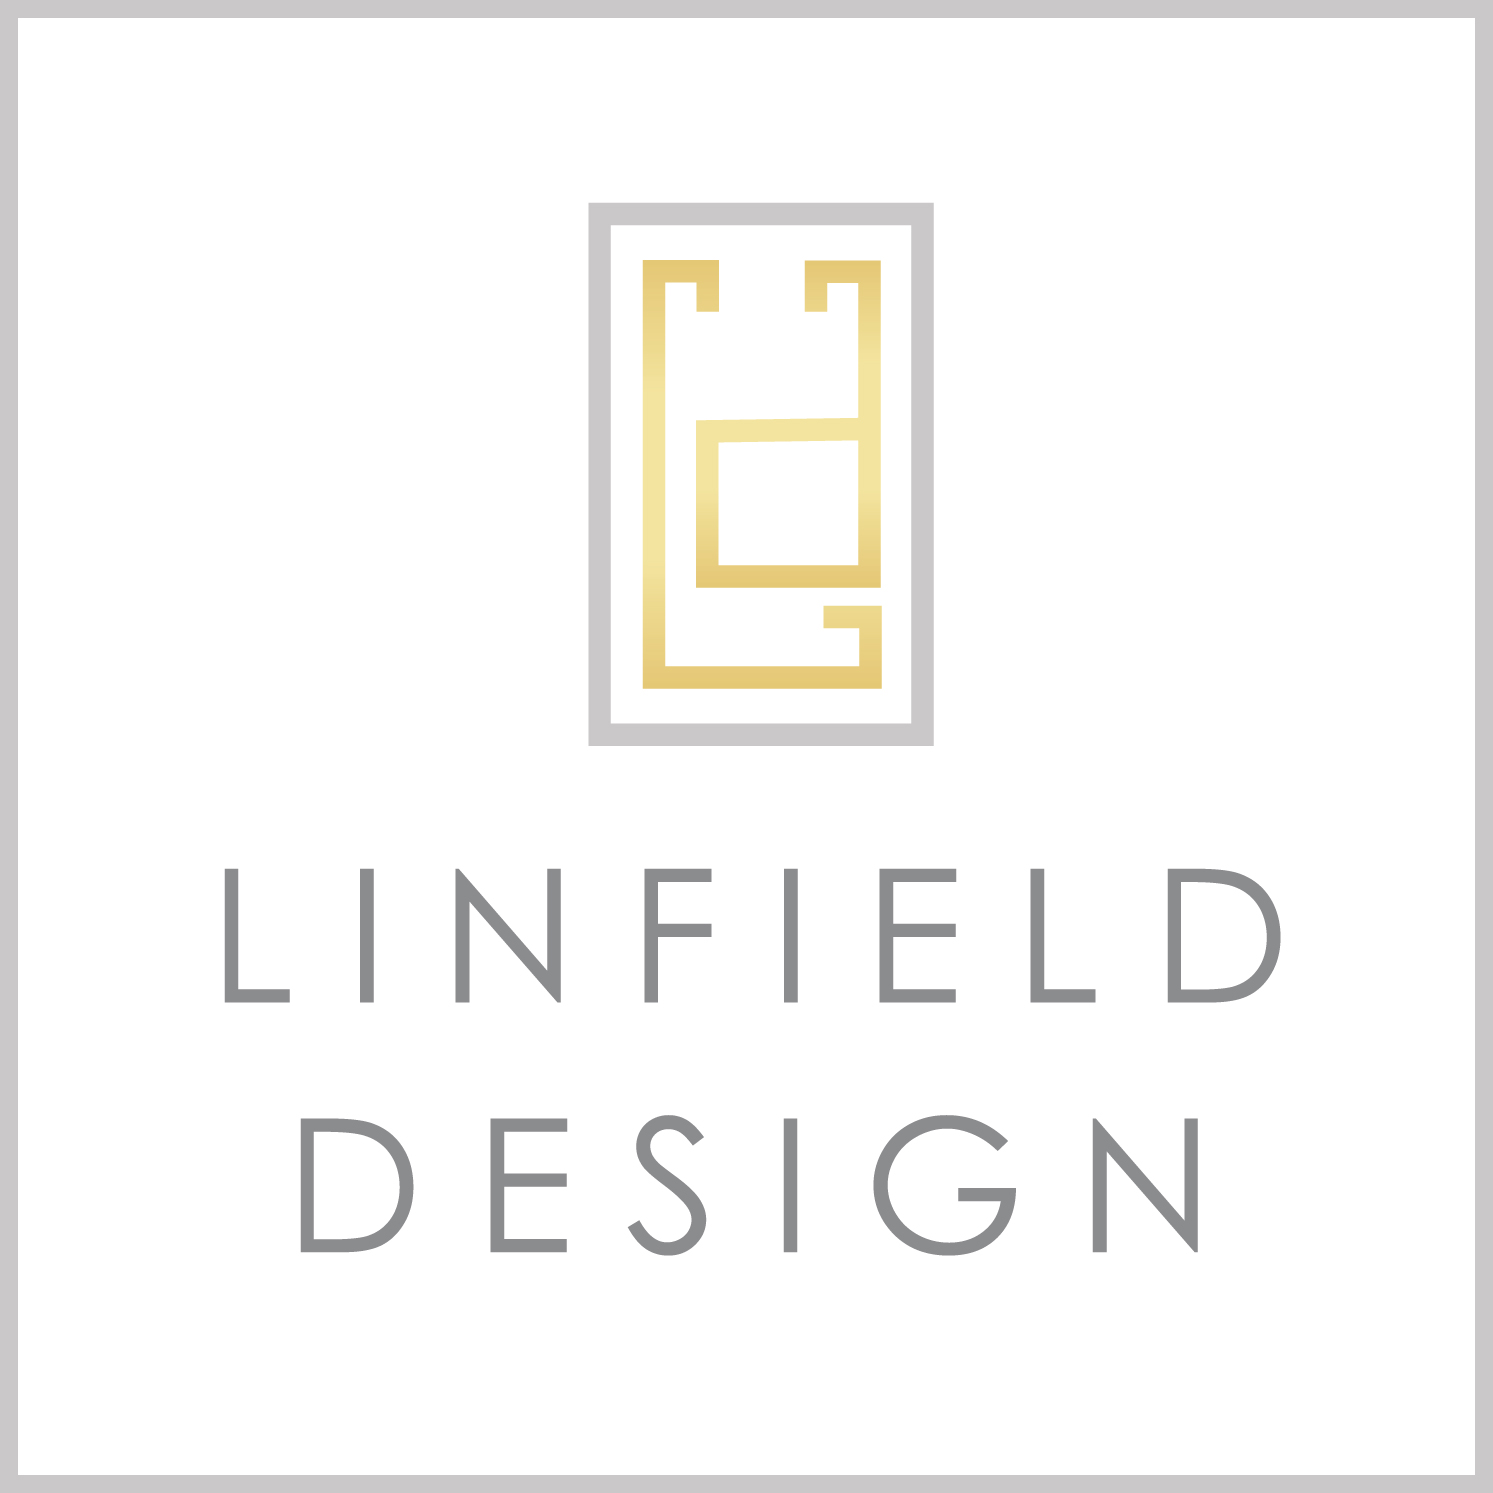 Linfield Design